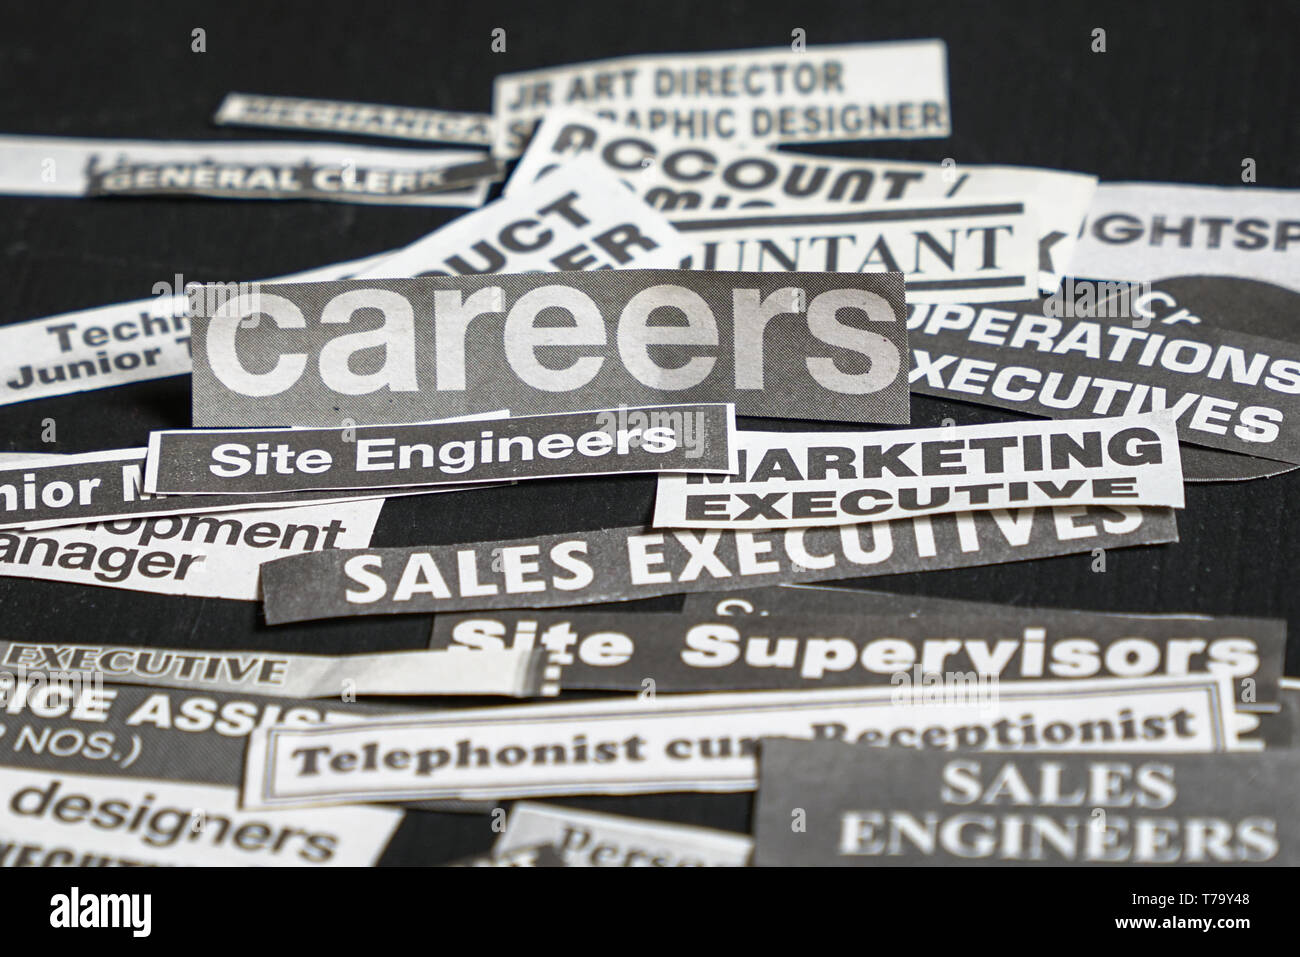 Jobs or careers concept: multiple job titles or occupations cut off from newspaper with Careers on top of the pile and on black background - Stock Image